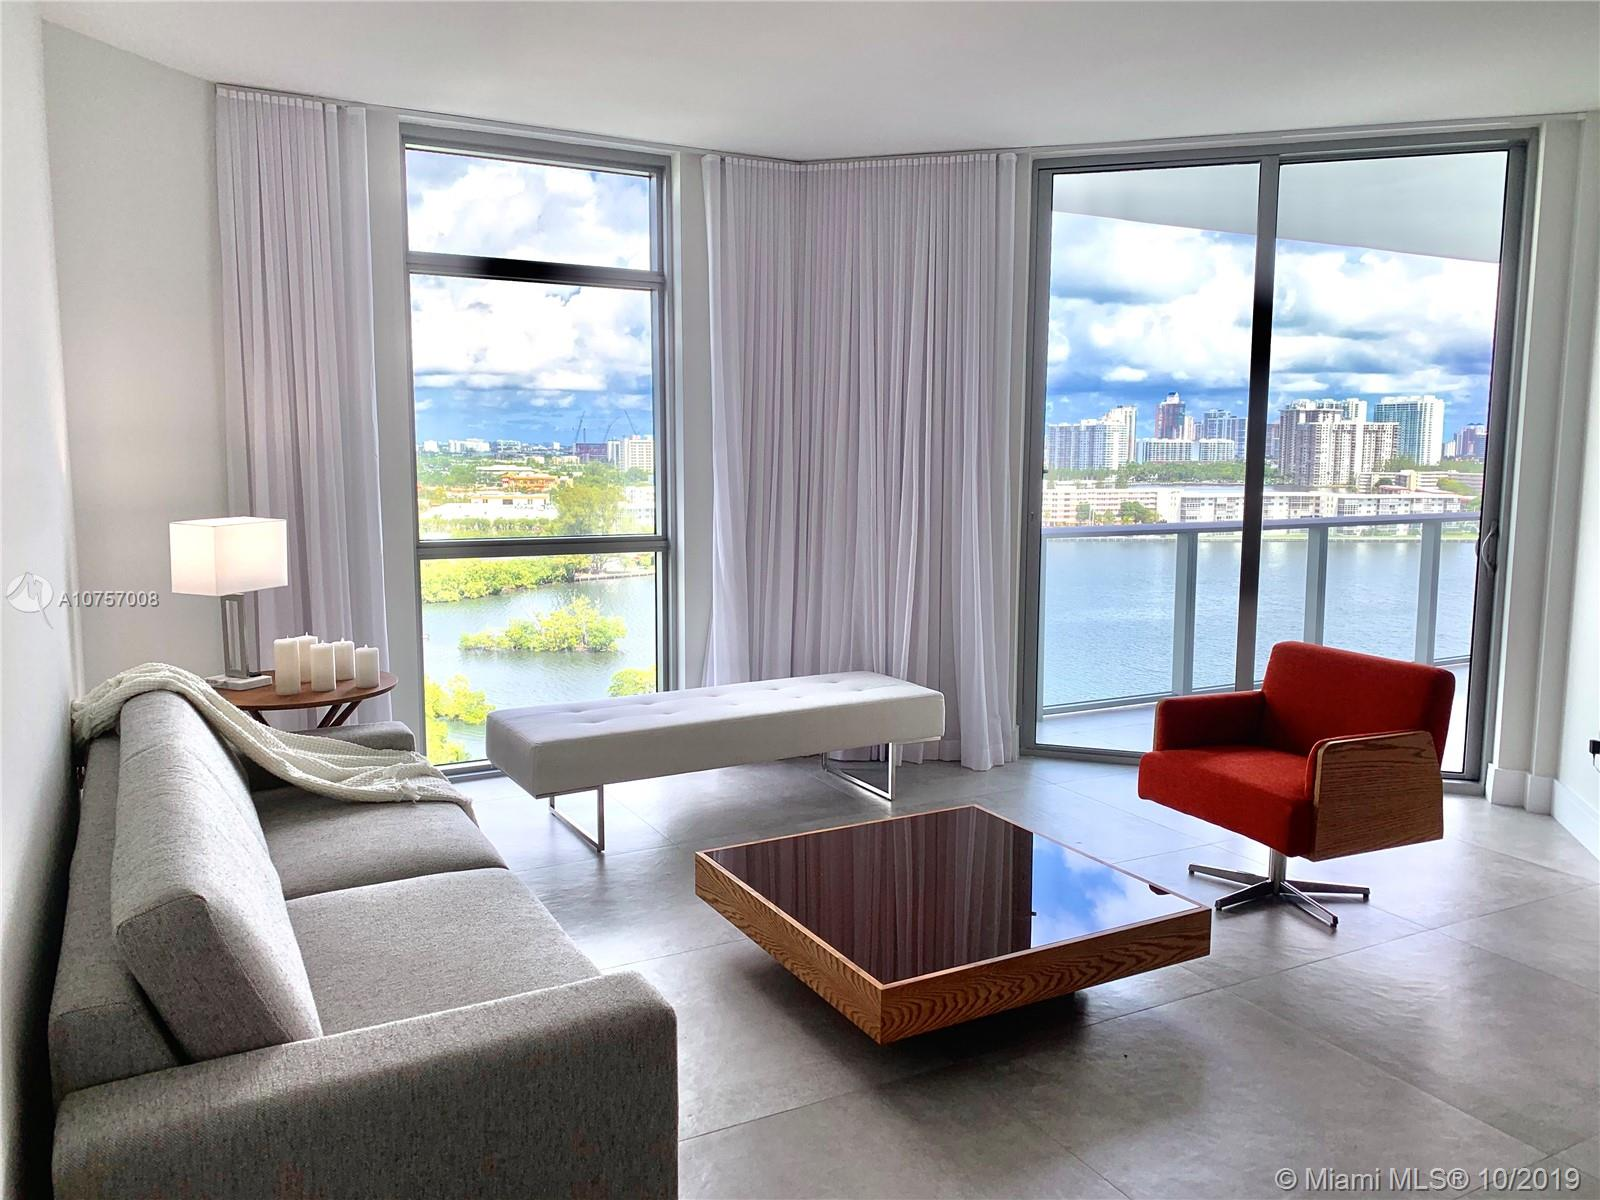 17301  Biscayne Blvd #1206 For Sale A10757008, FL